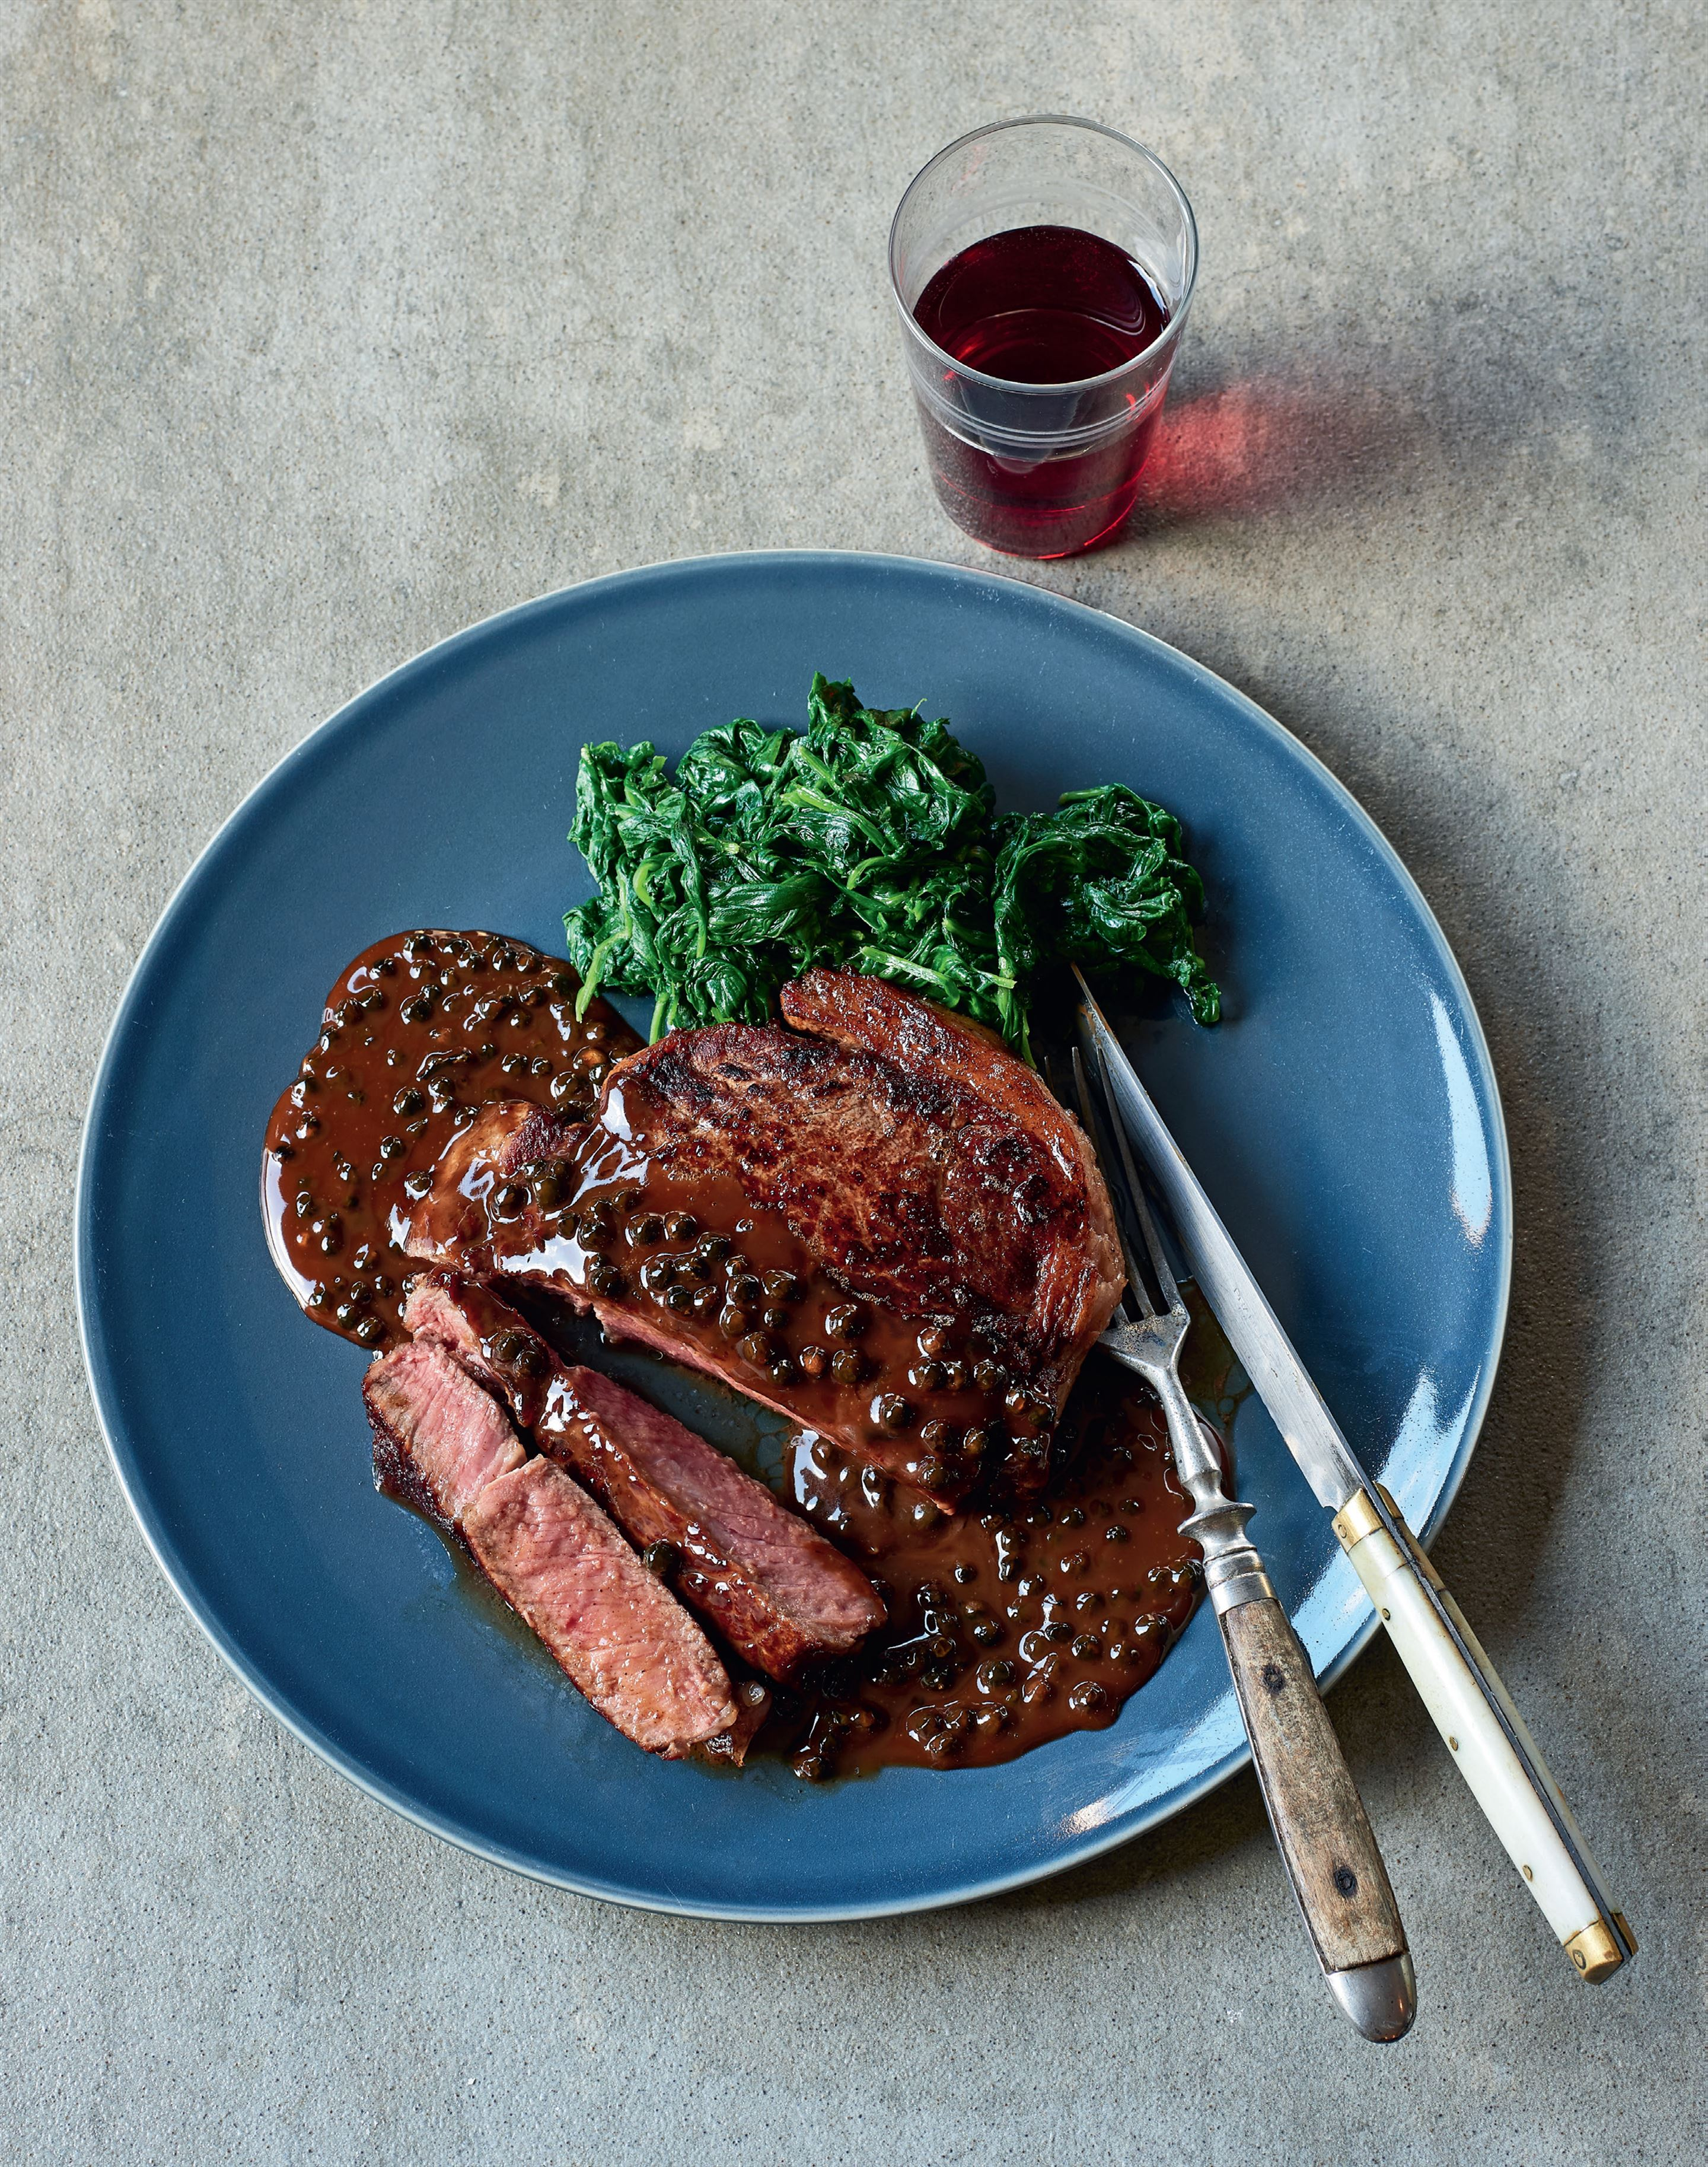 Steak au poivre with wilted spinach